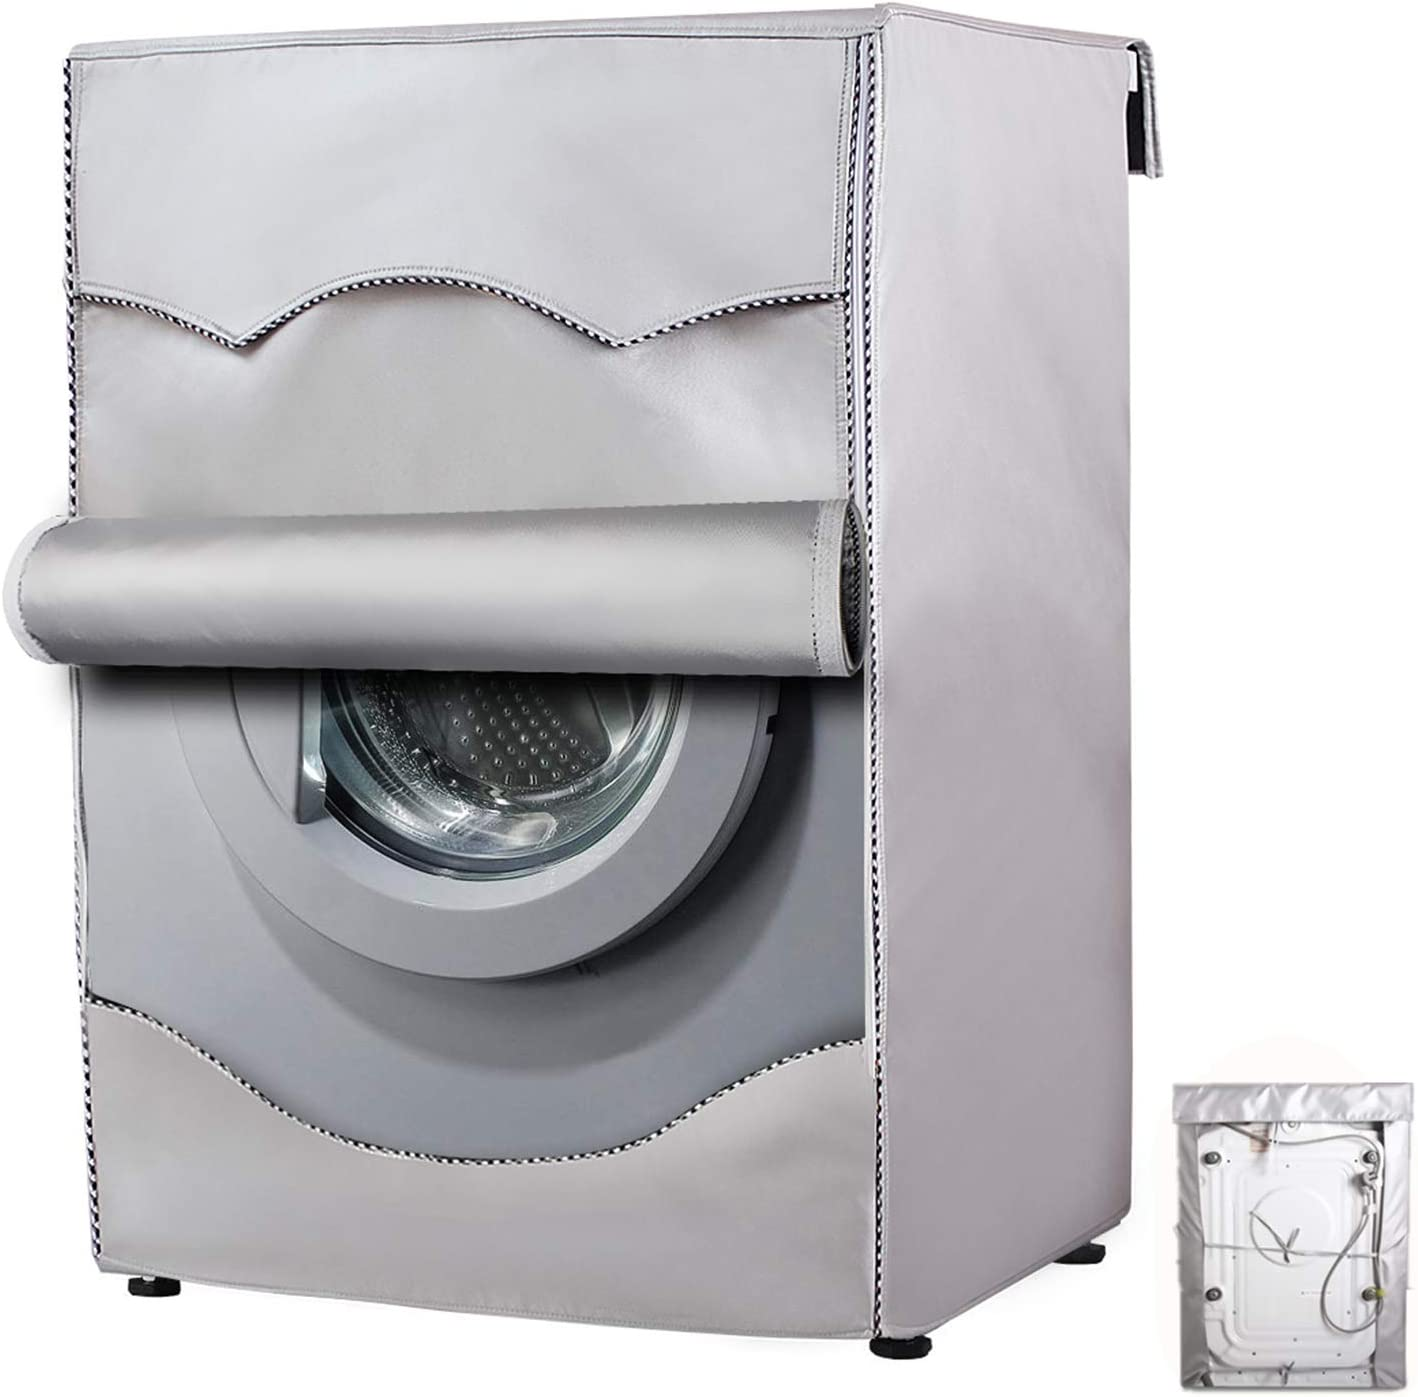 Durable Washing Machine Cover Waterproof Dustproof For Front Load Washer//Dryer